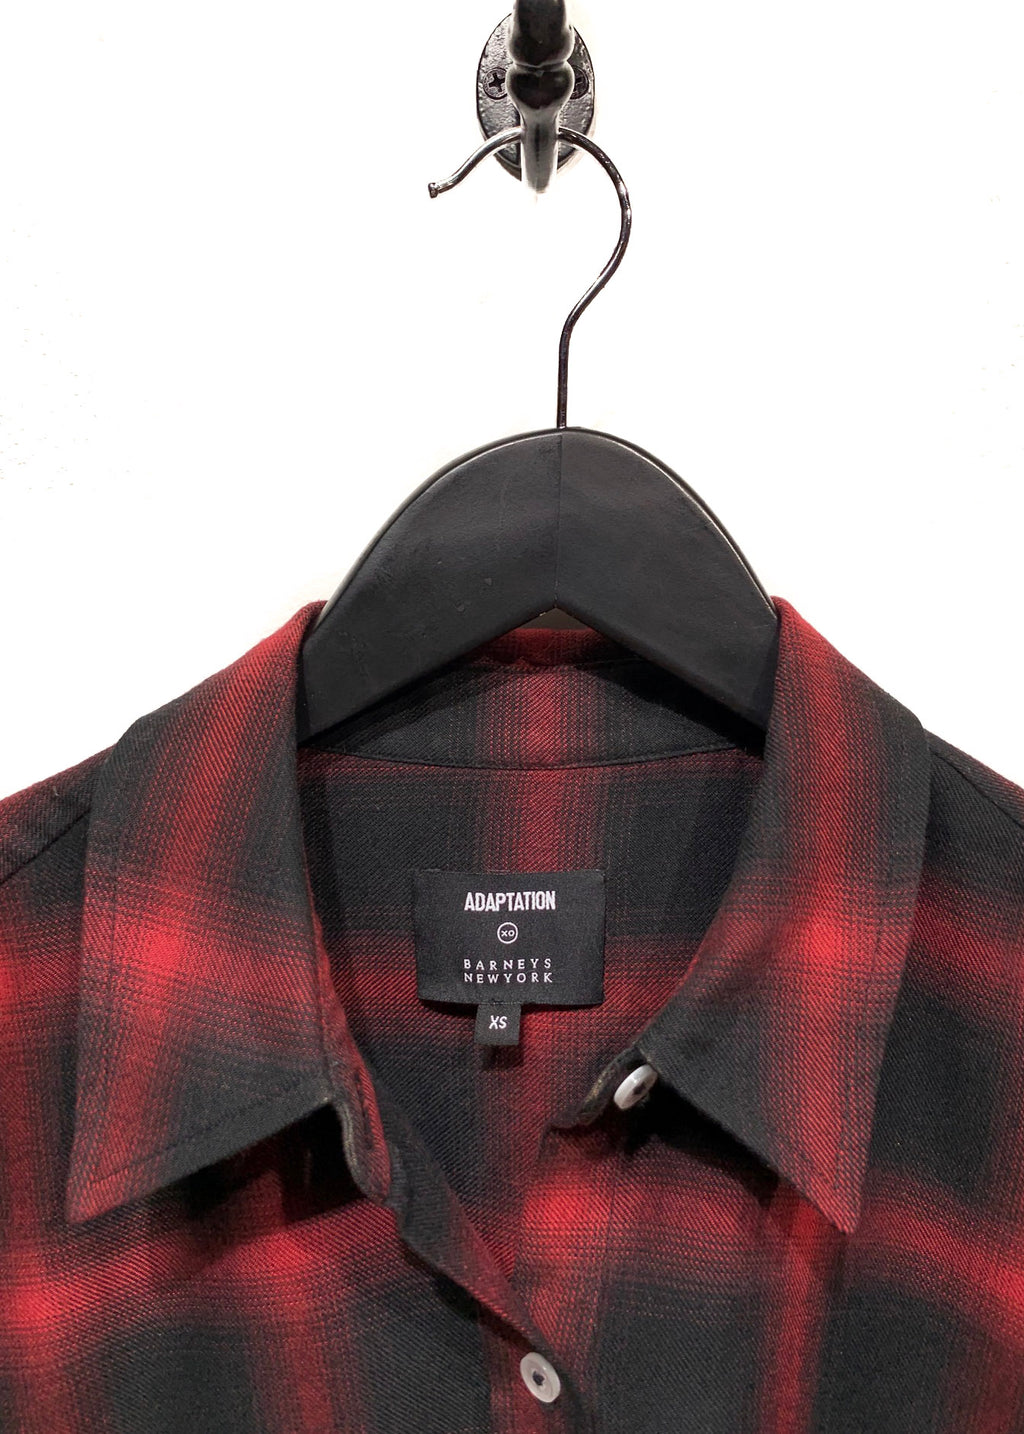 Adaptation Flower Embroidered Black Red Flannel Plaid Button Shirt